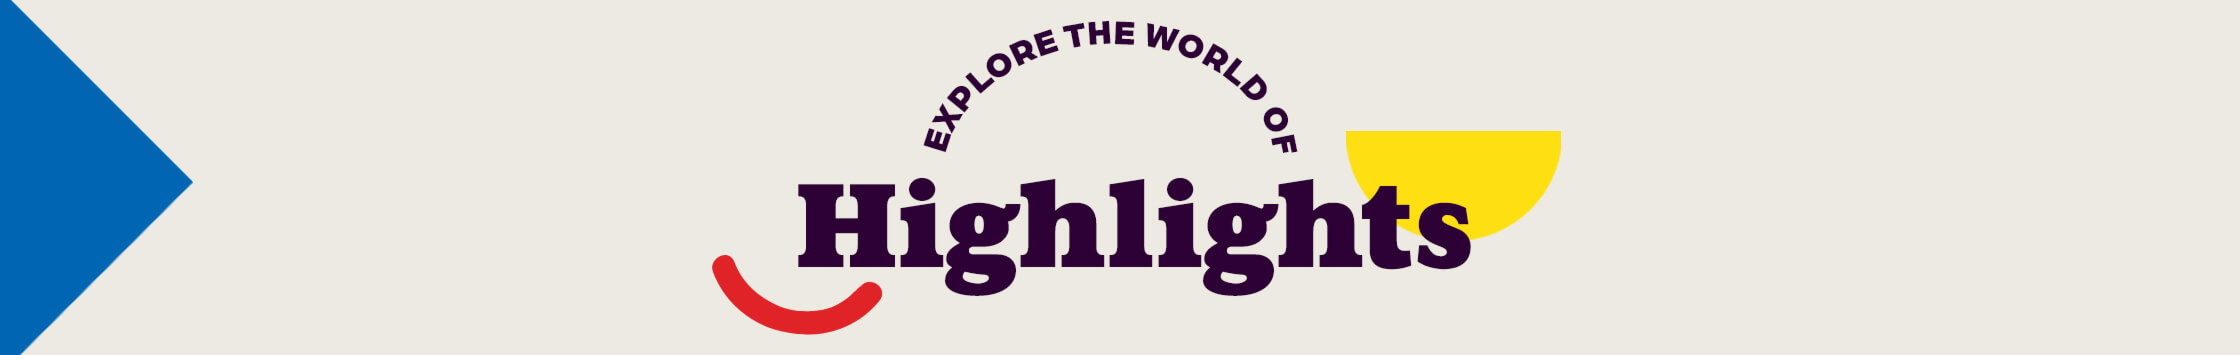 Explore the world of Highlights when you shop by age.